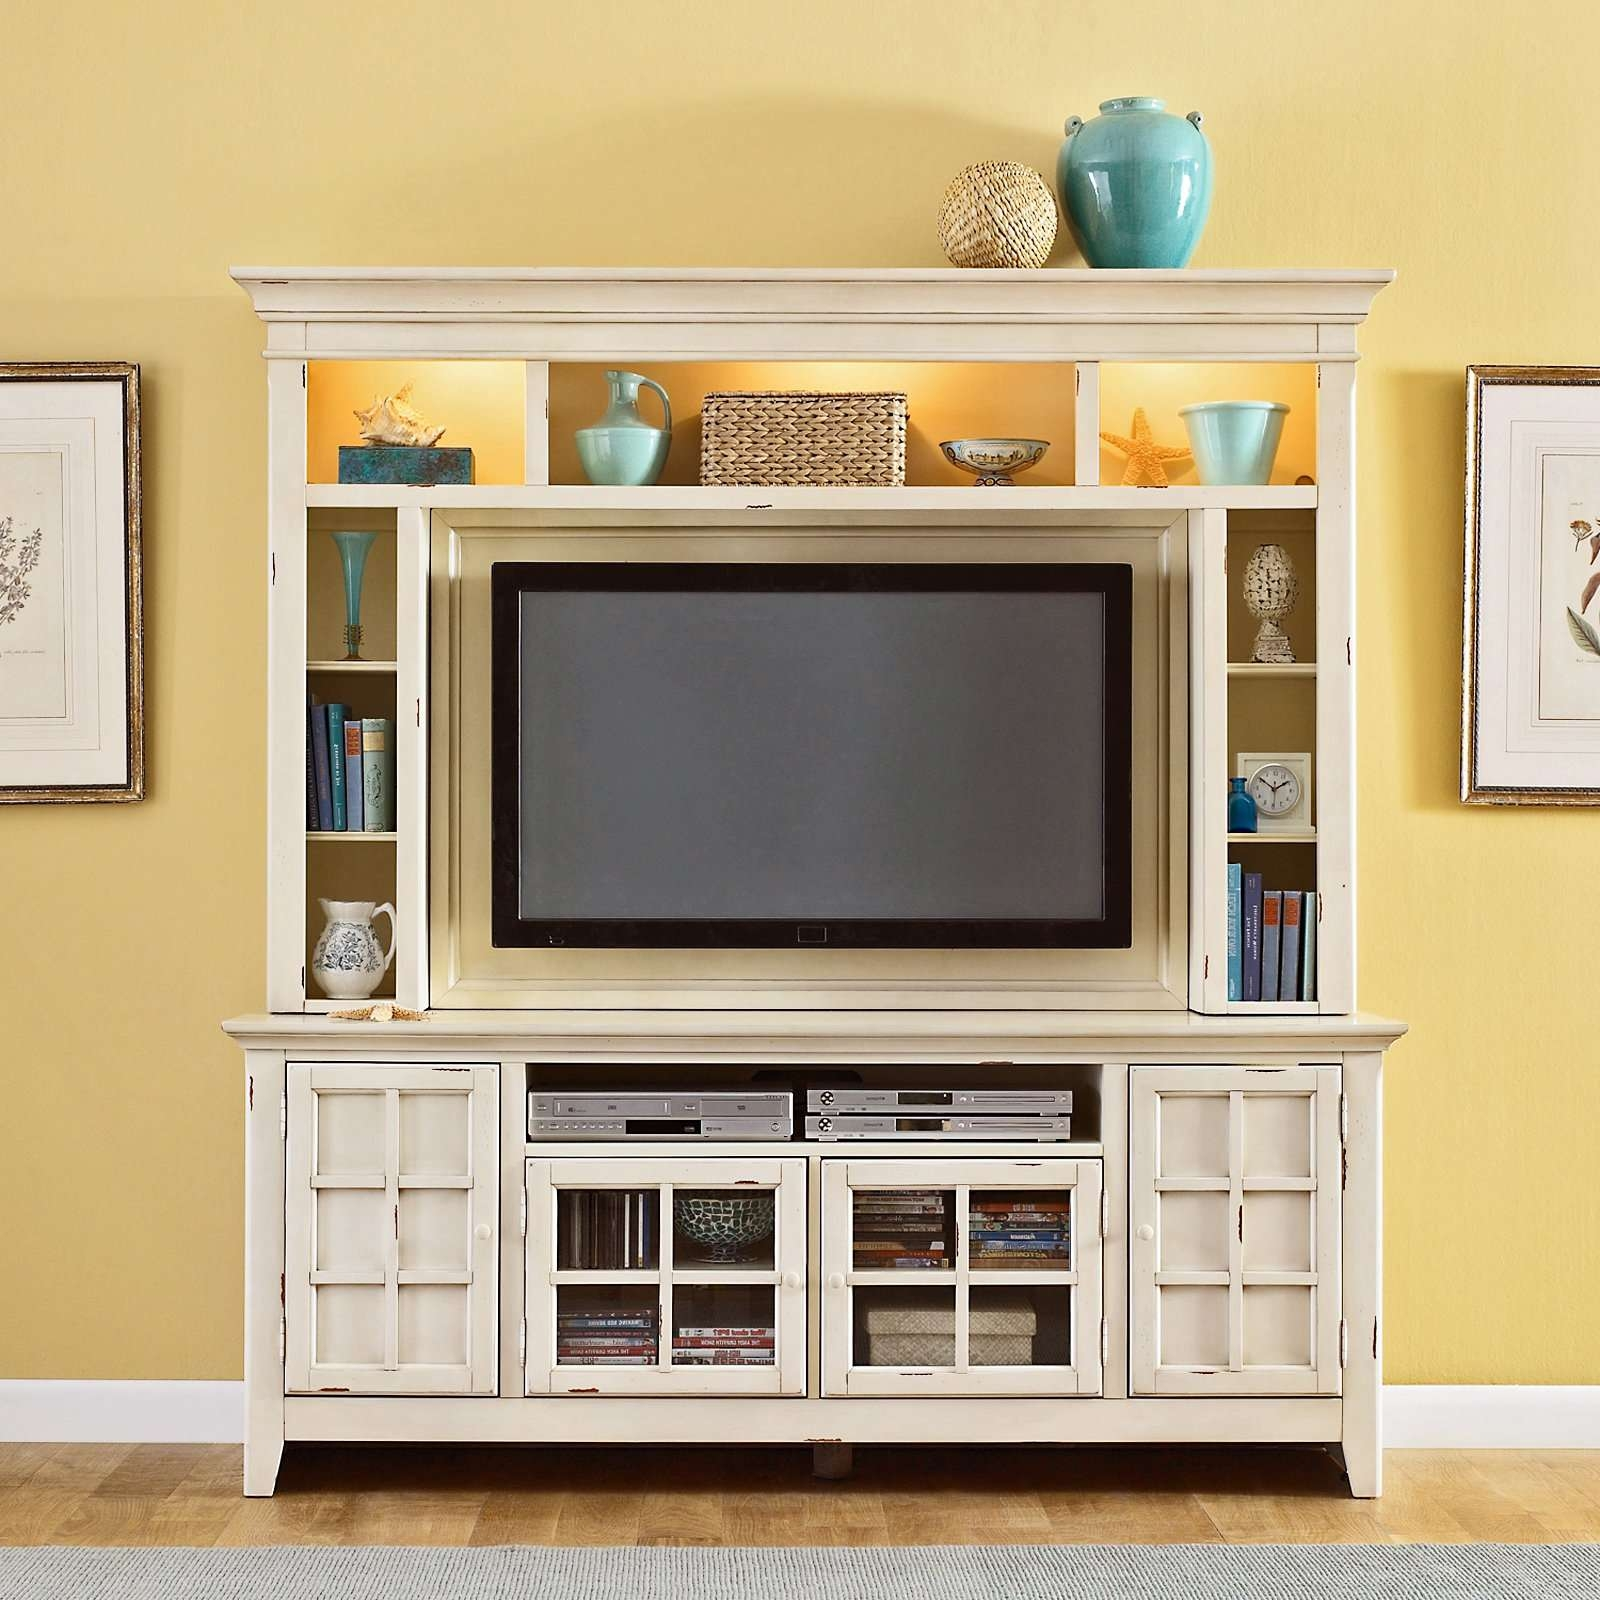 60 Inch Tv Cabinet White – Imanisr For Large White Tv Stands (View 14 of 15)